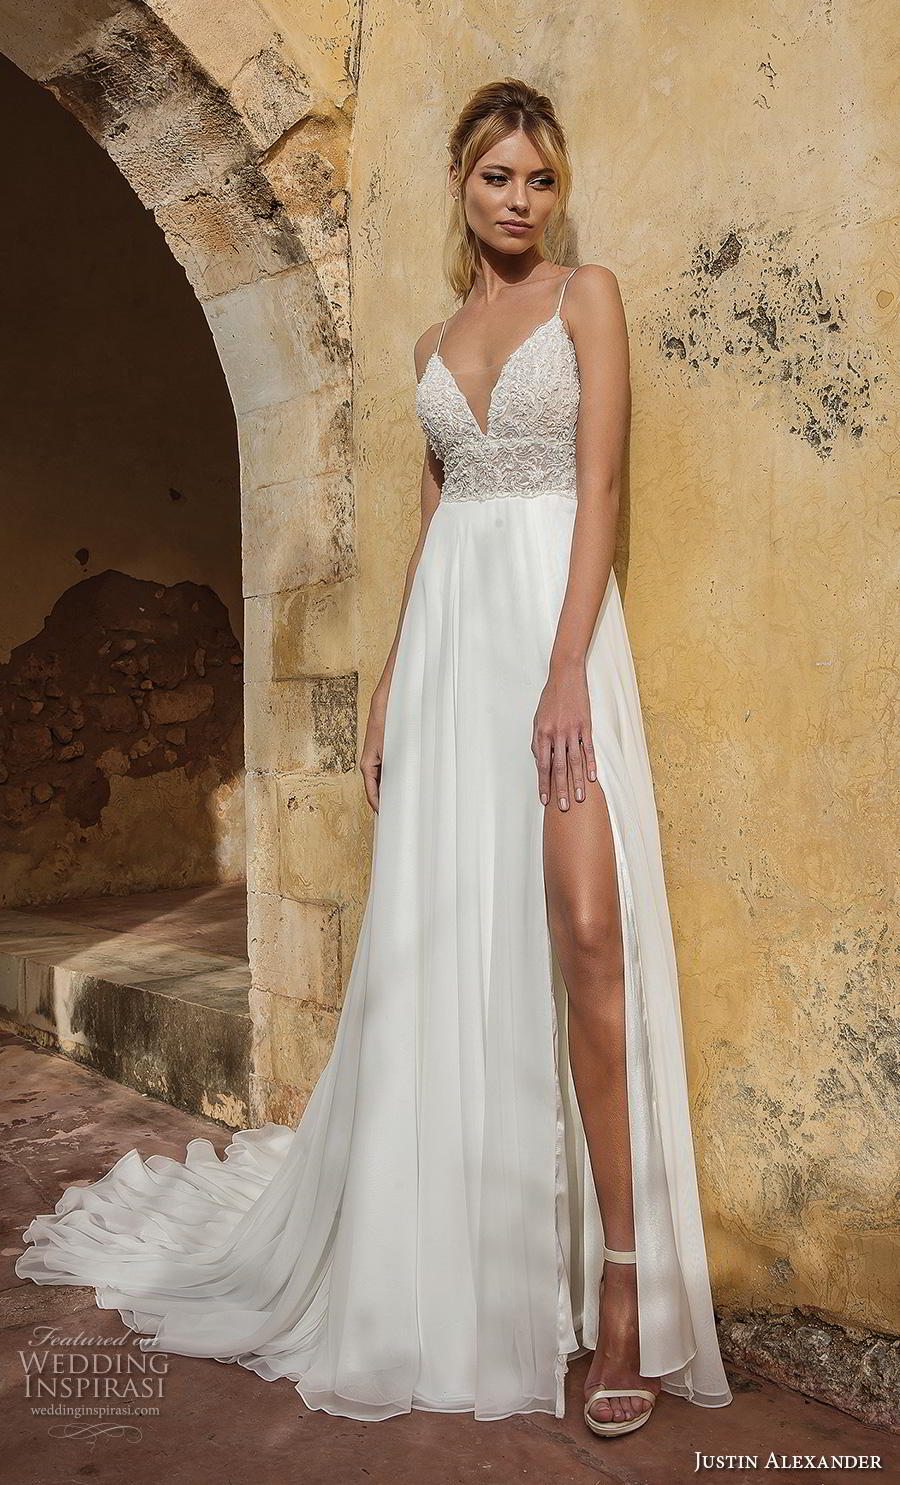 justin alexander spring 2019 bridal spaghetti strap deep sweetheart neckline heavily embellished bodice slit skirt sexy romantic soft a line wedding dress backless chapel train (9) mv